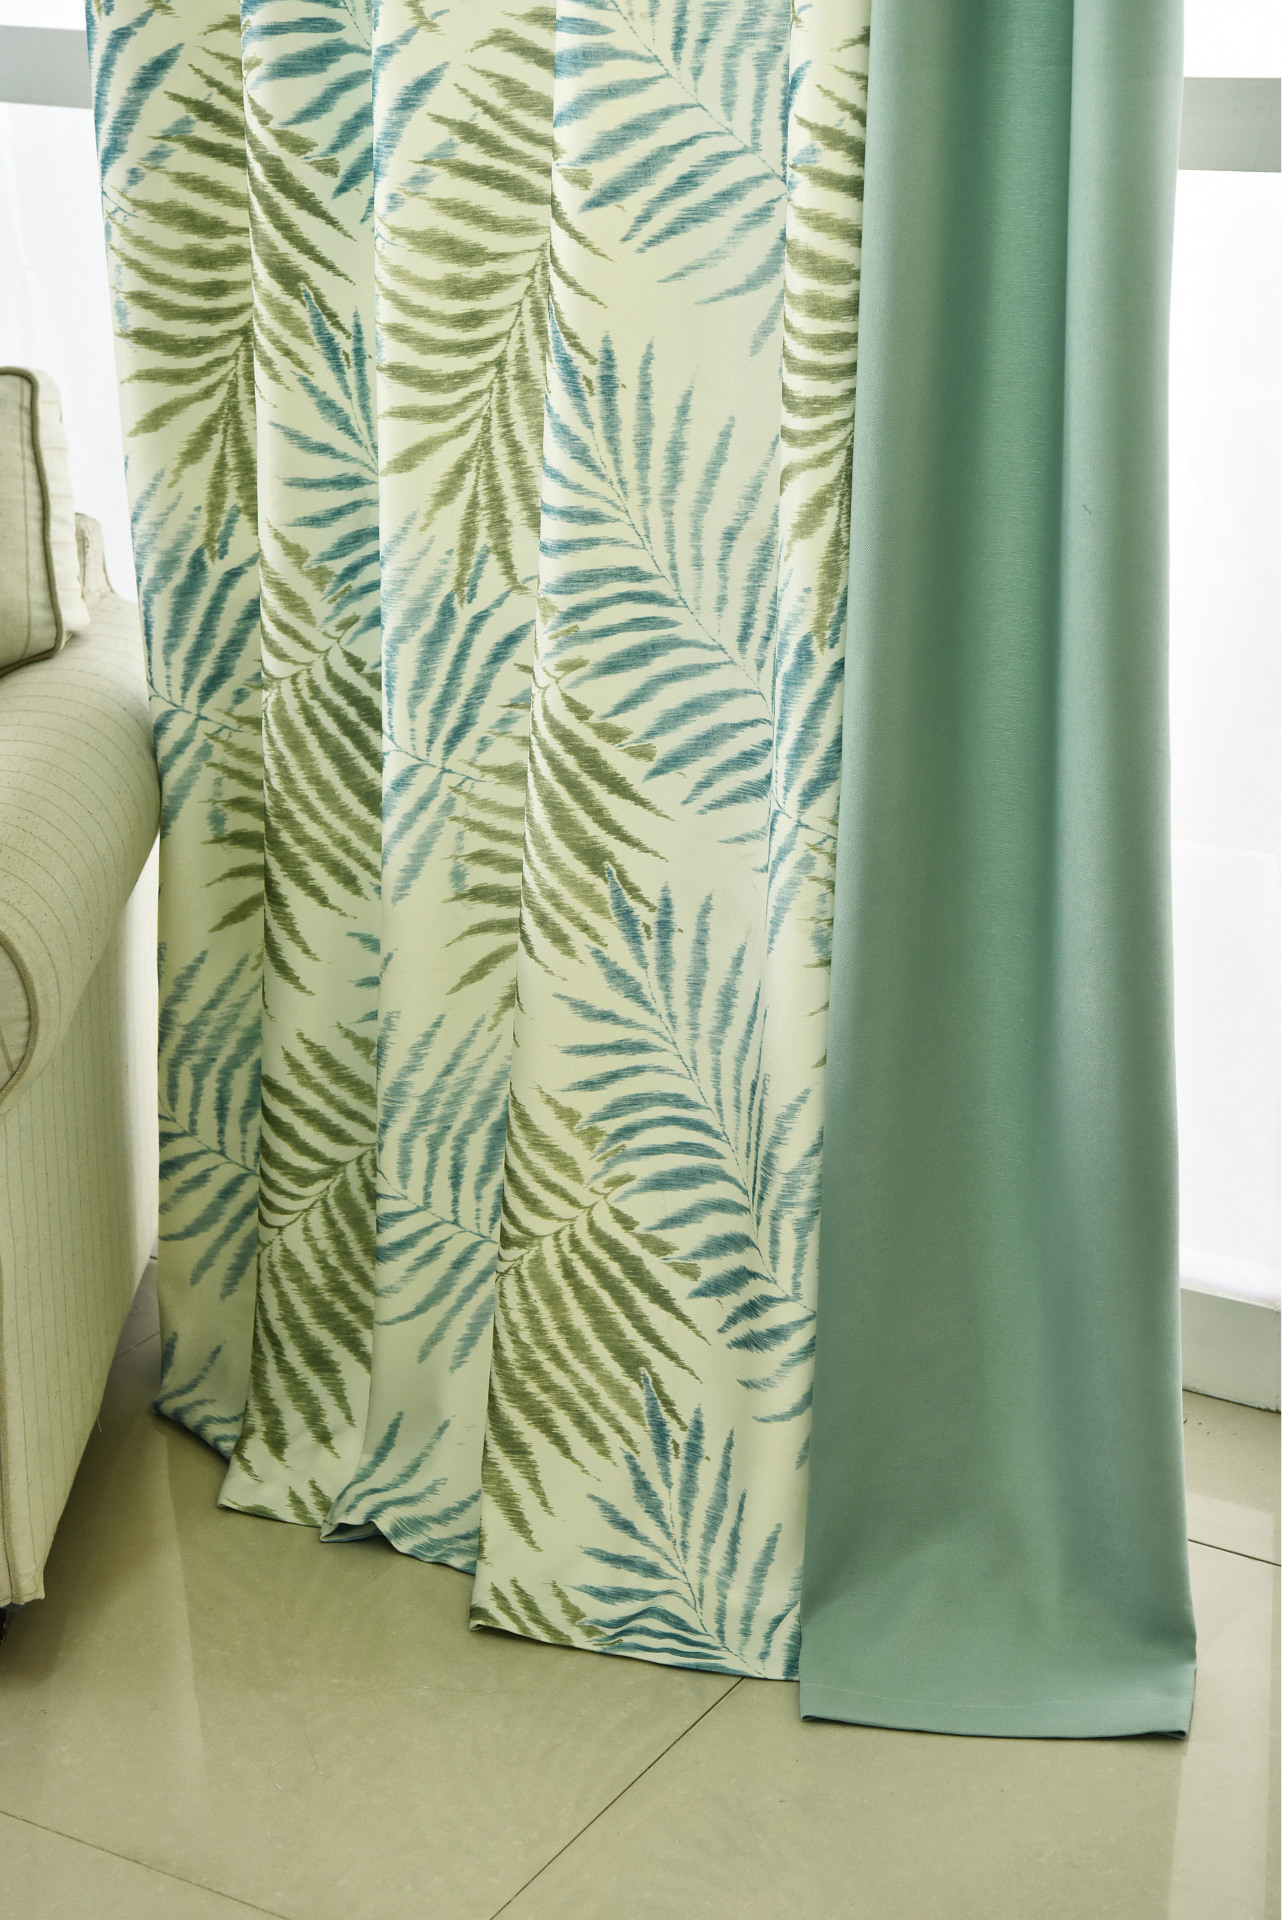 Tropical Fern Leaf Printed Curtains For Living Room Window Treatments Fancy Curtain Tulle For The Bedroom Drapes Decoration Curtains For Curtains For Living Roomthe Curtain Aliexpress